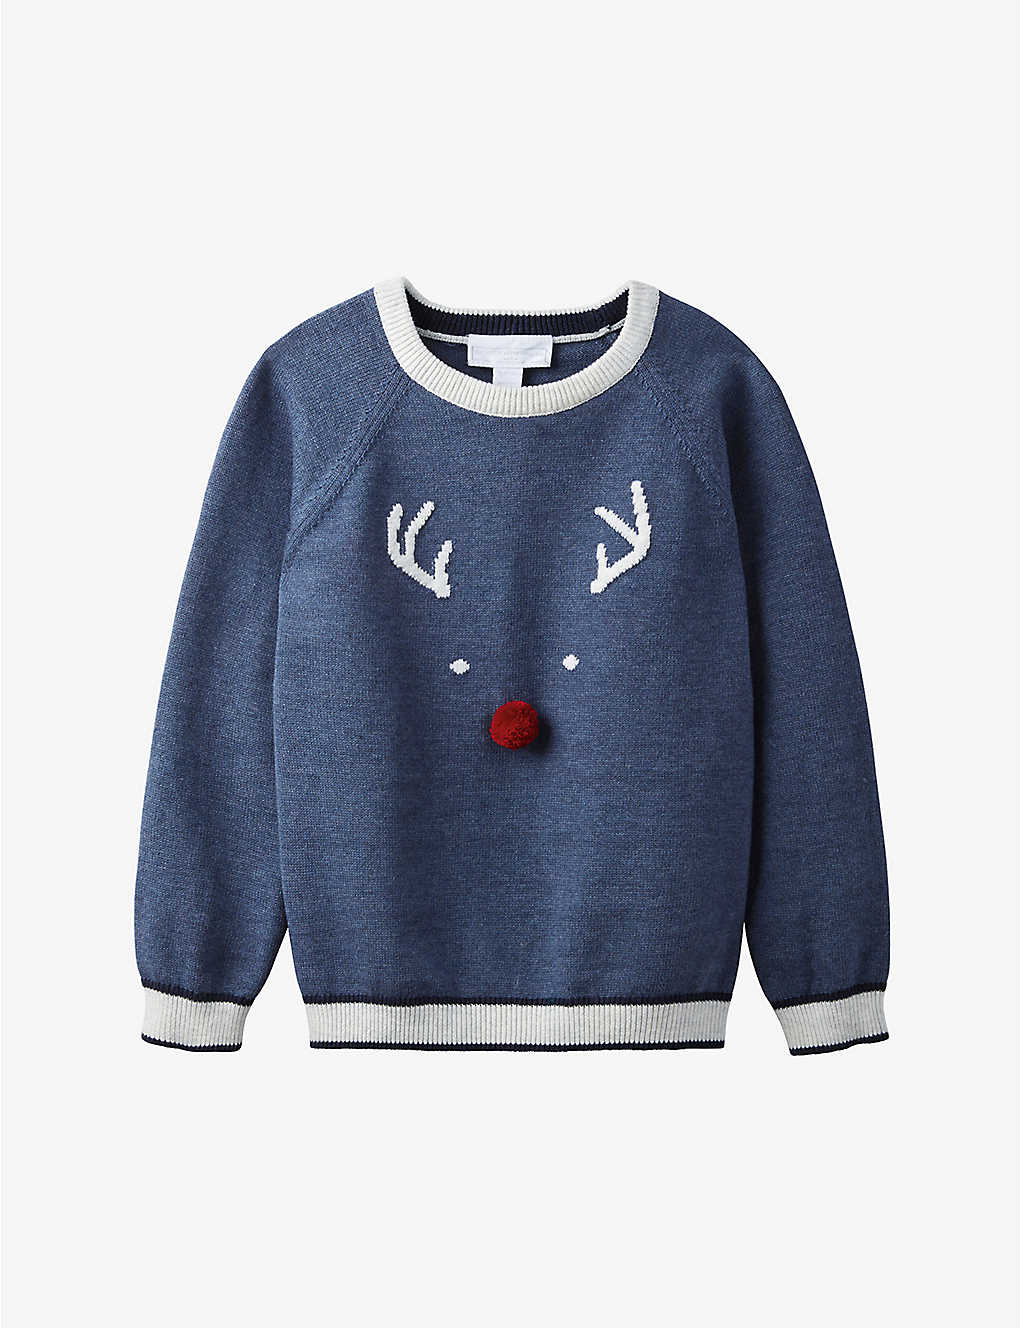 THE LITTLE WHITE COMPANY: Reindeer cotton-blend jumper 1-6 years